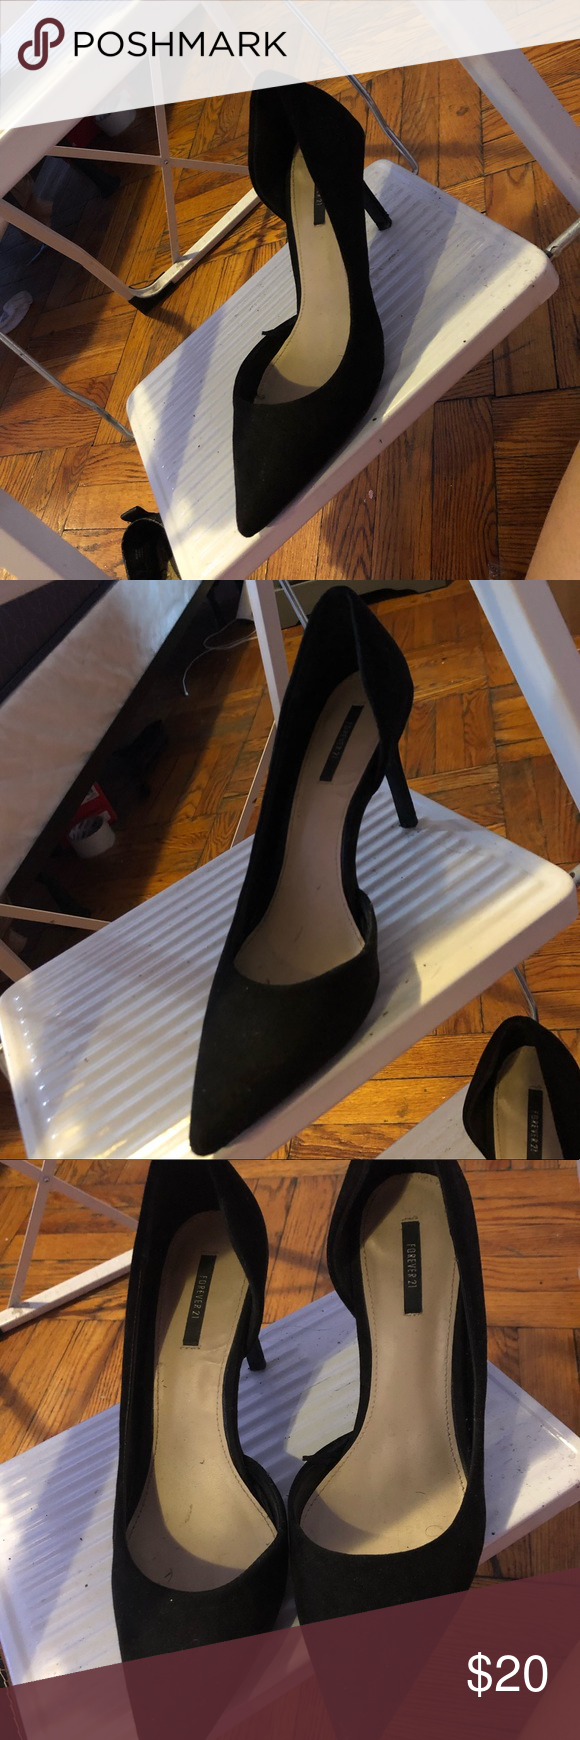 Black Forever21 Pointy Heels Pointy Heels Heels Forever 21 Shoes